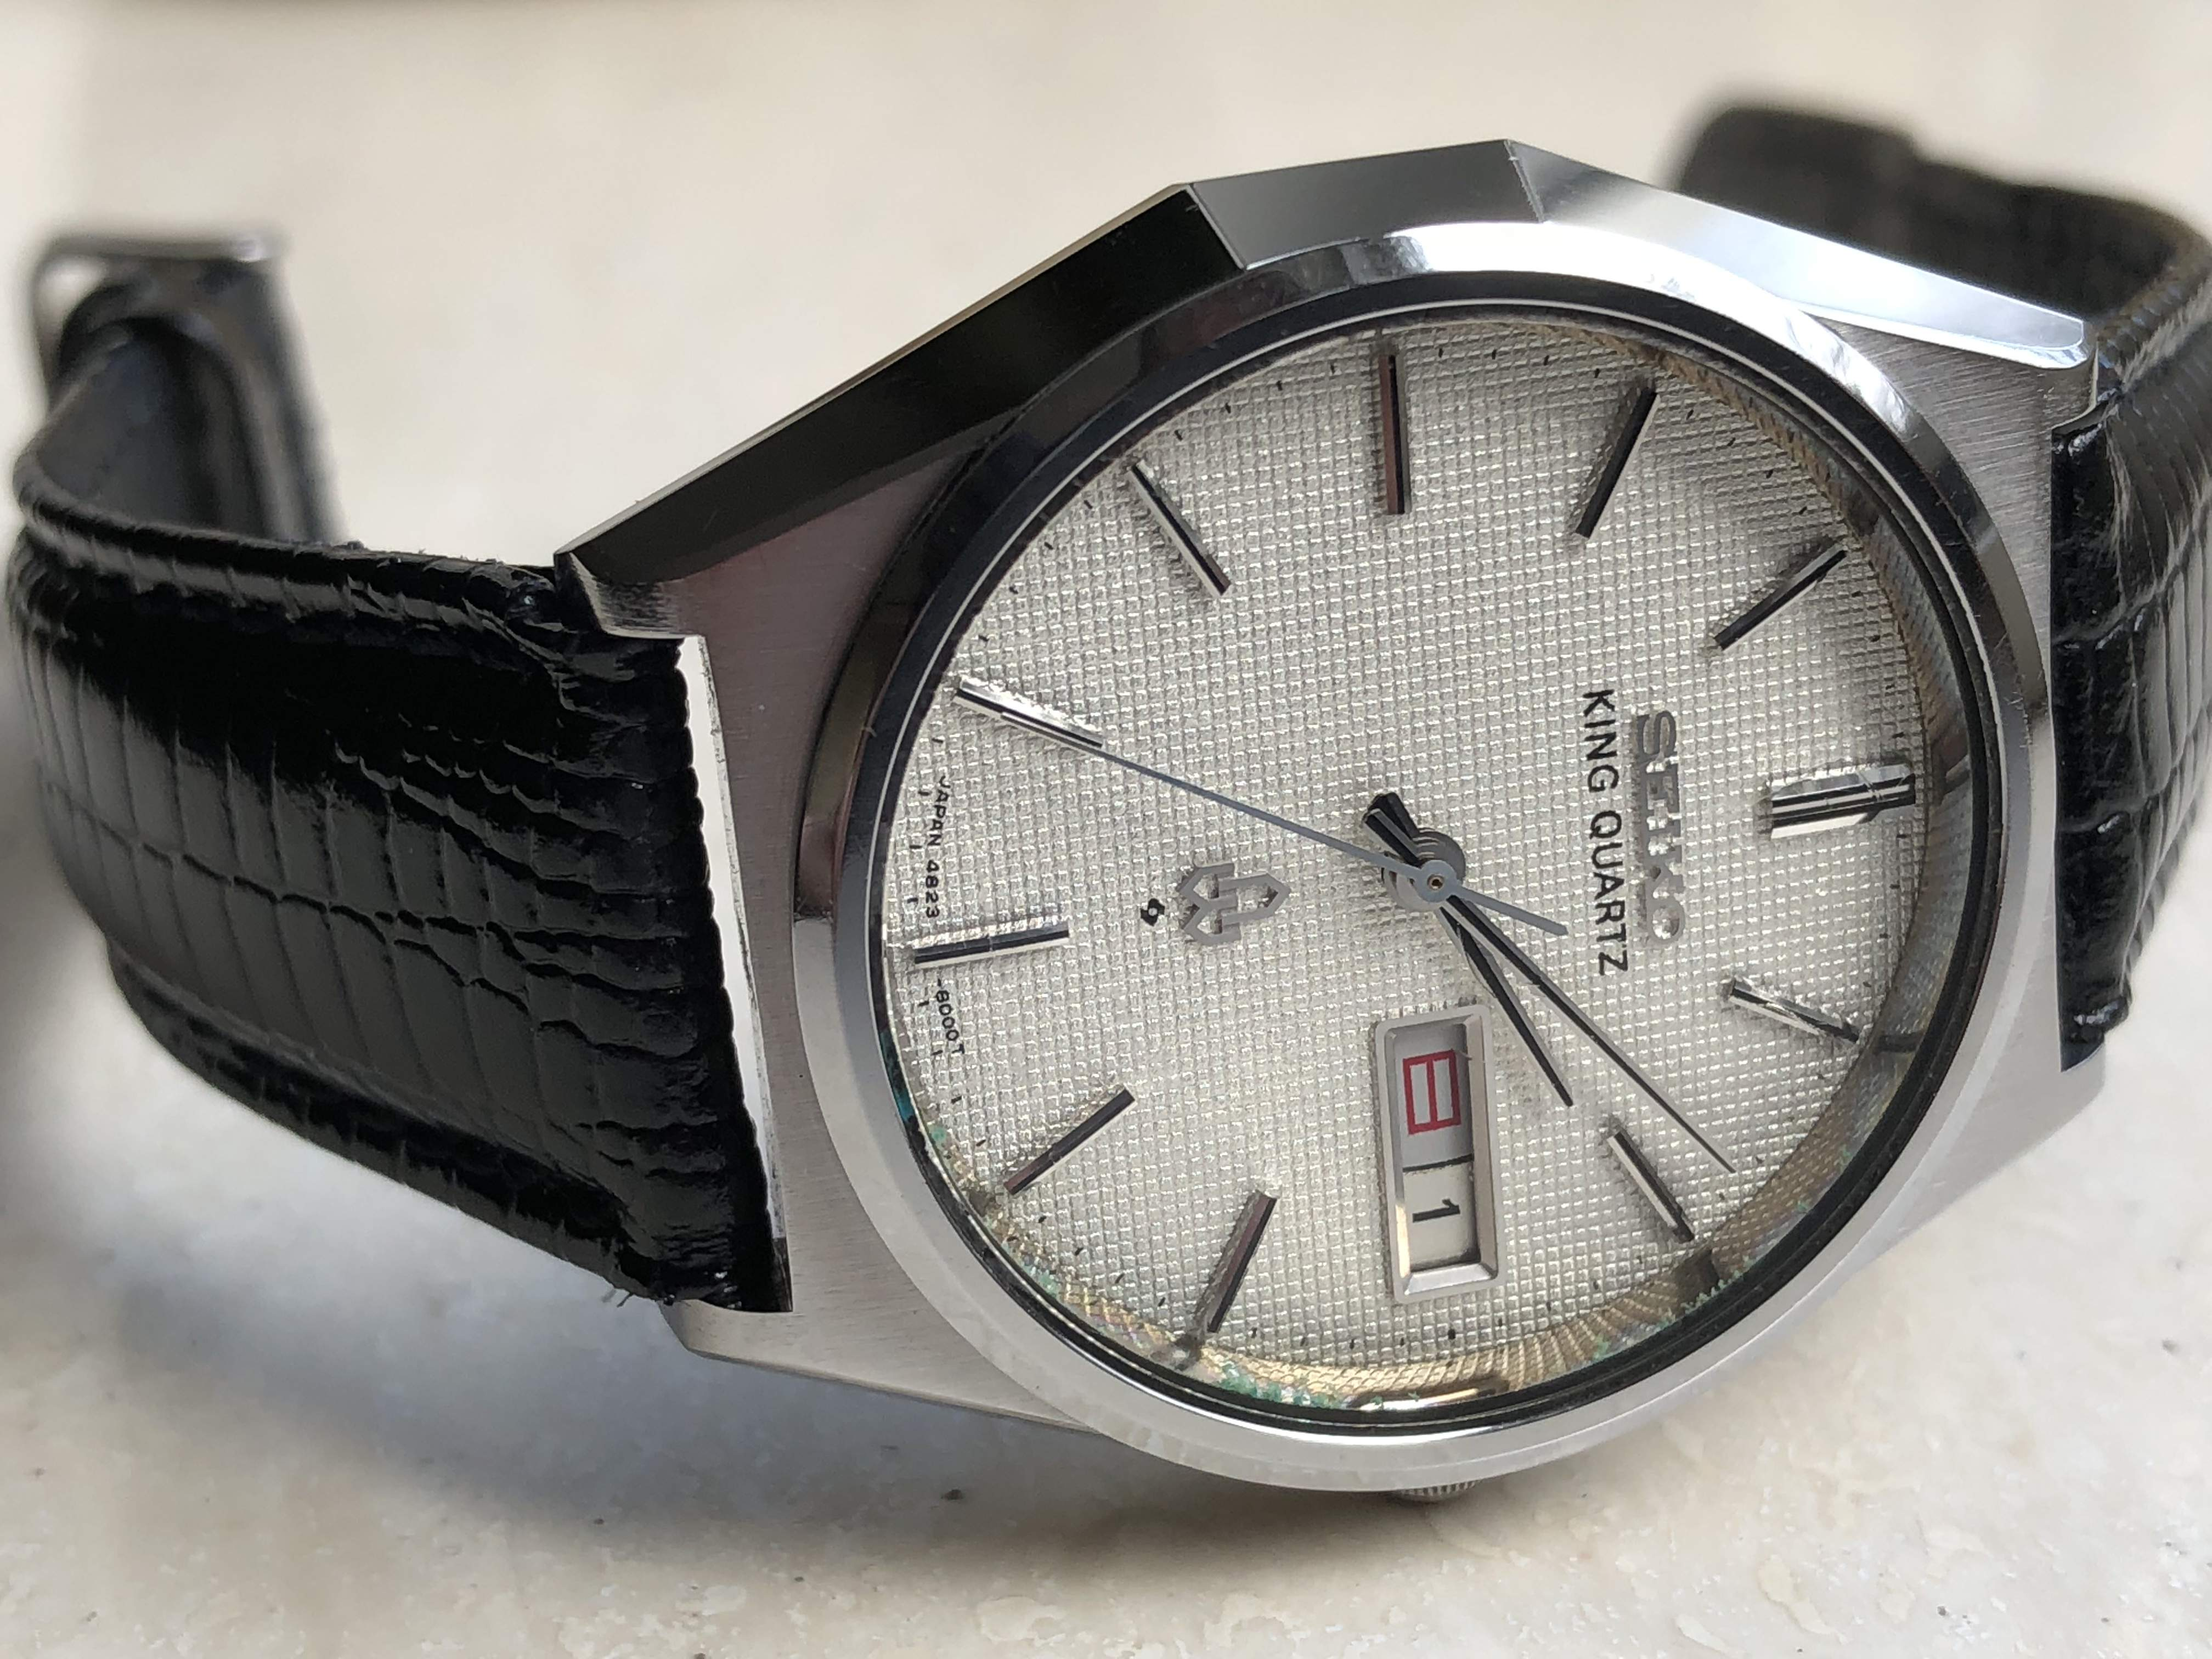 Seiko King Quartz 4823-8050 (sold)